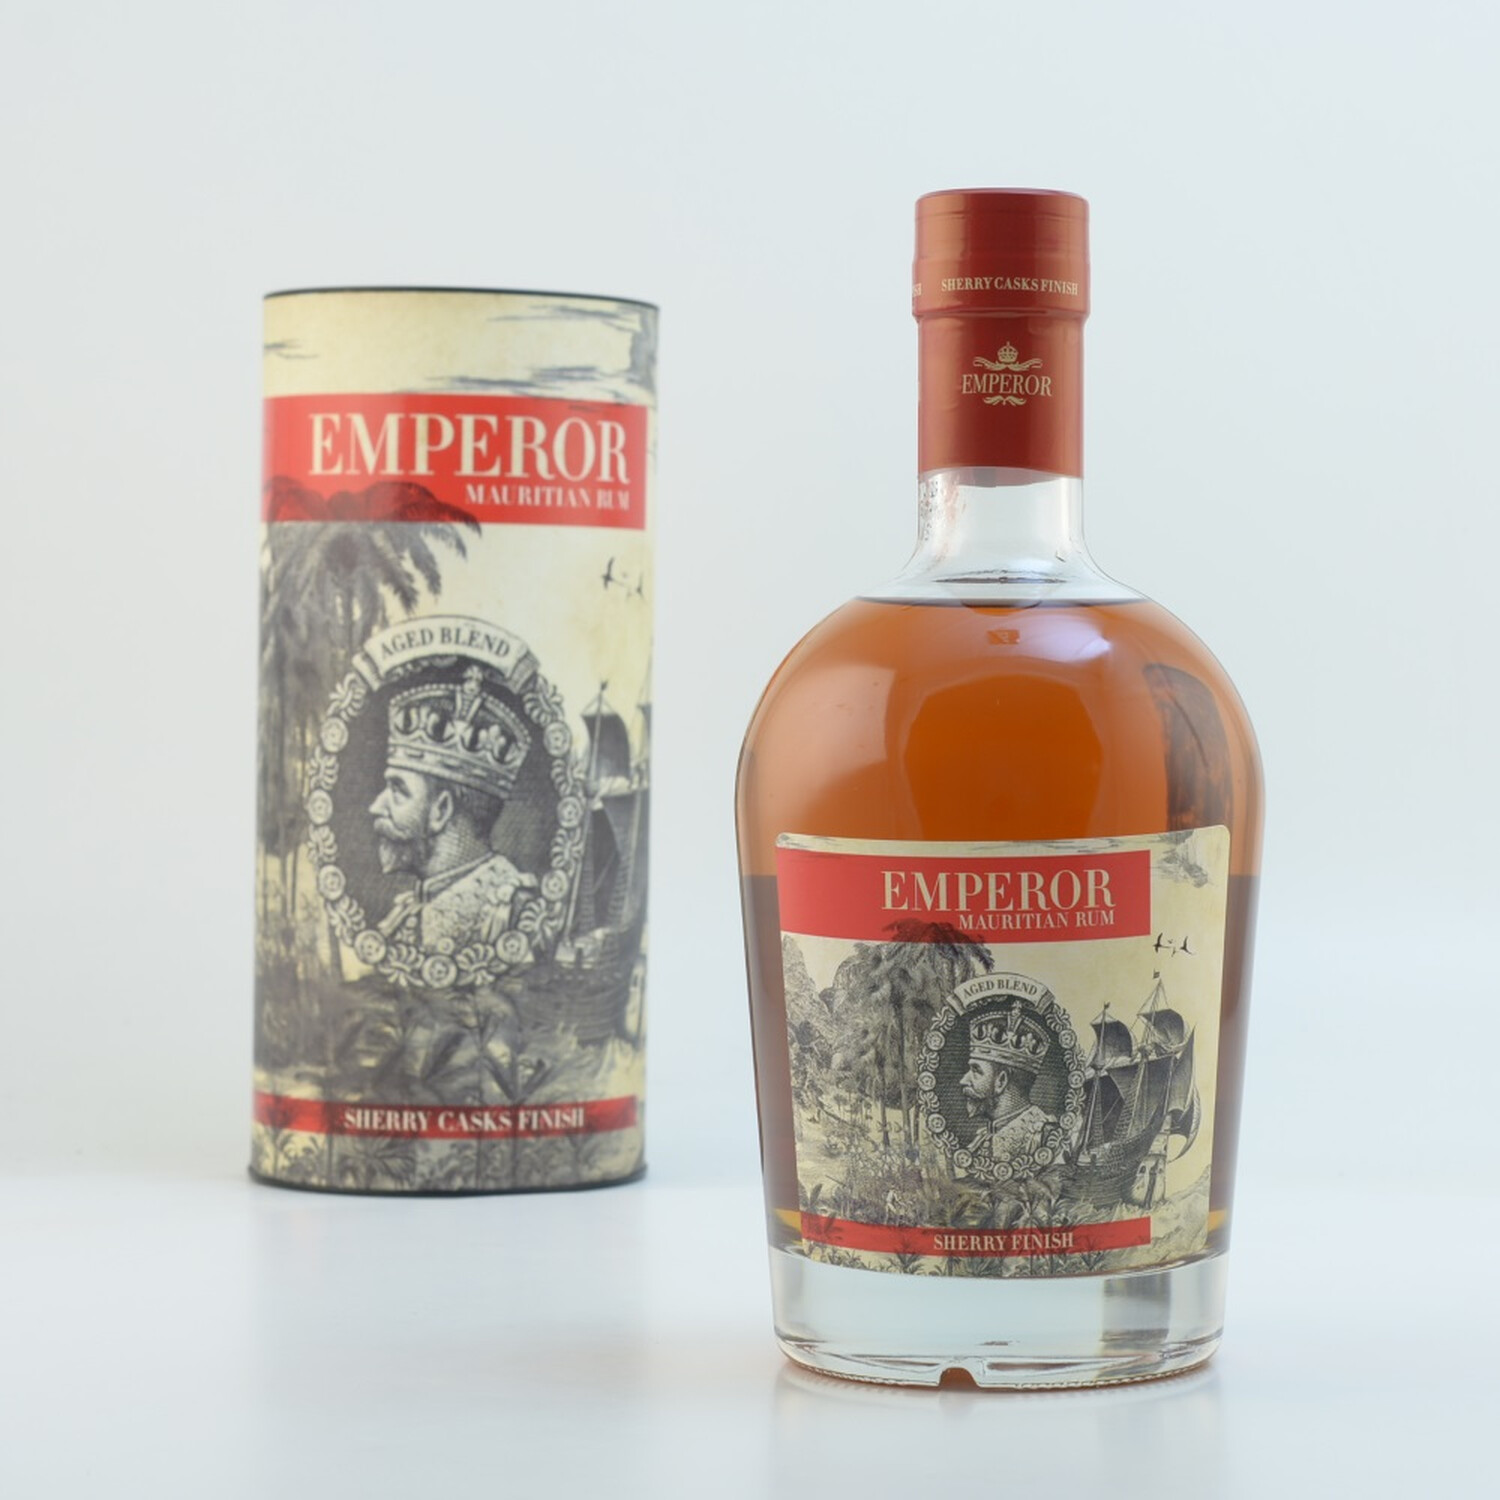 Emperor Mauritian Rum Sherry Finish 40% 0,7l (78,43 € pro 1 l)